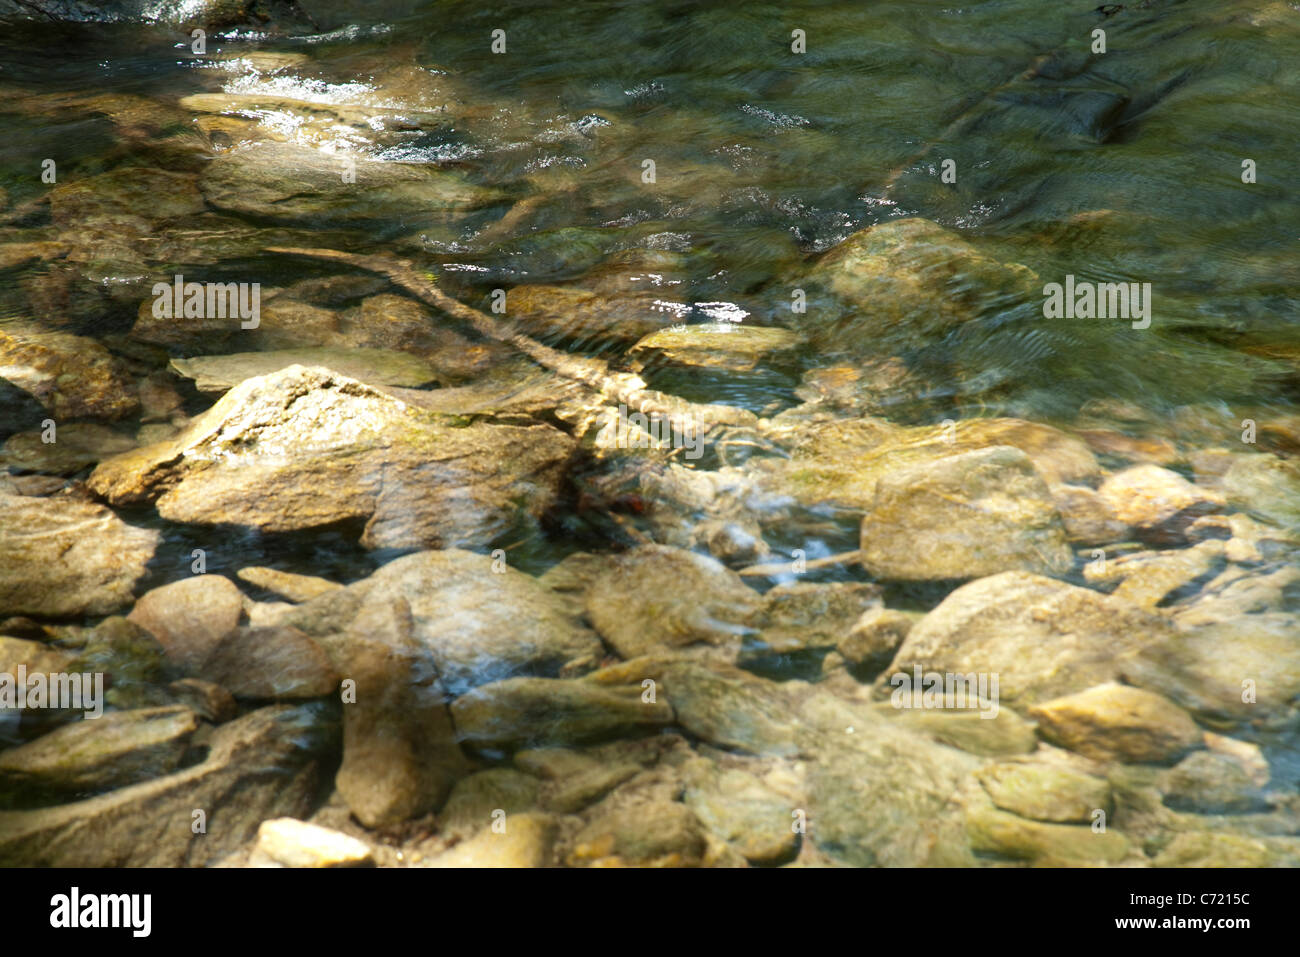 Clear river with rocks - Stock Image